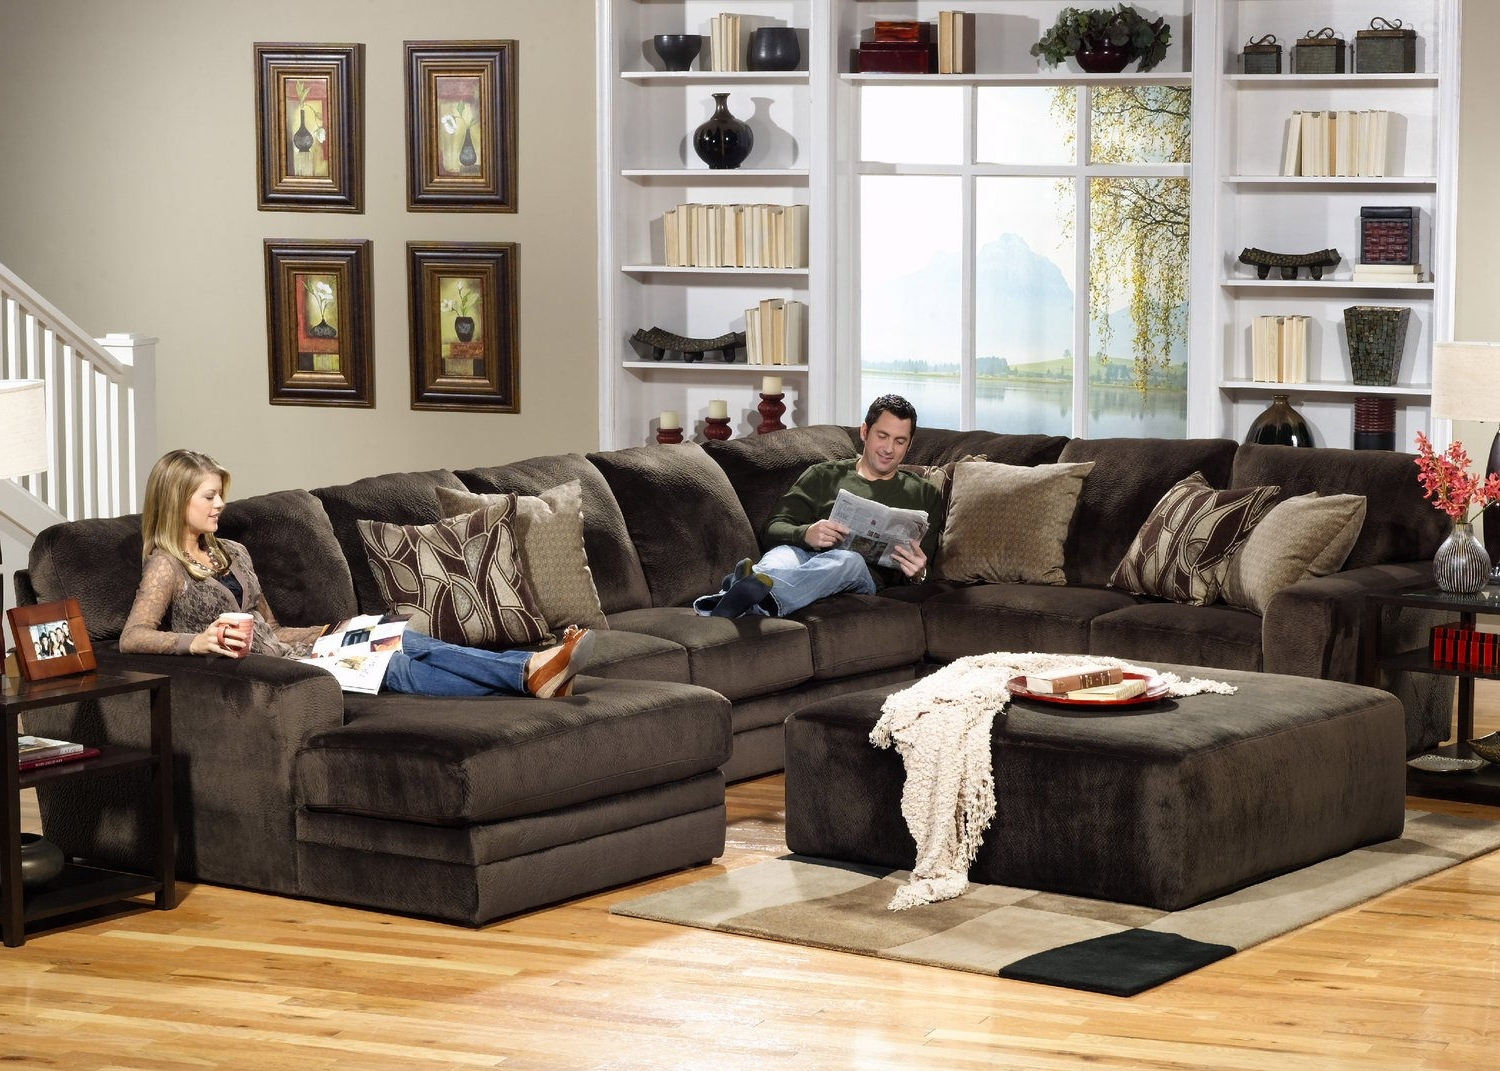 Rainier 3 Piece Sectional (View 10 of 20)